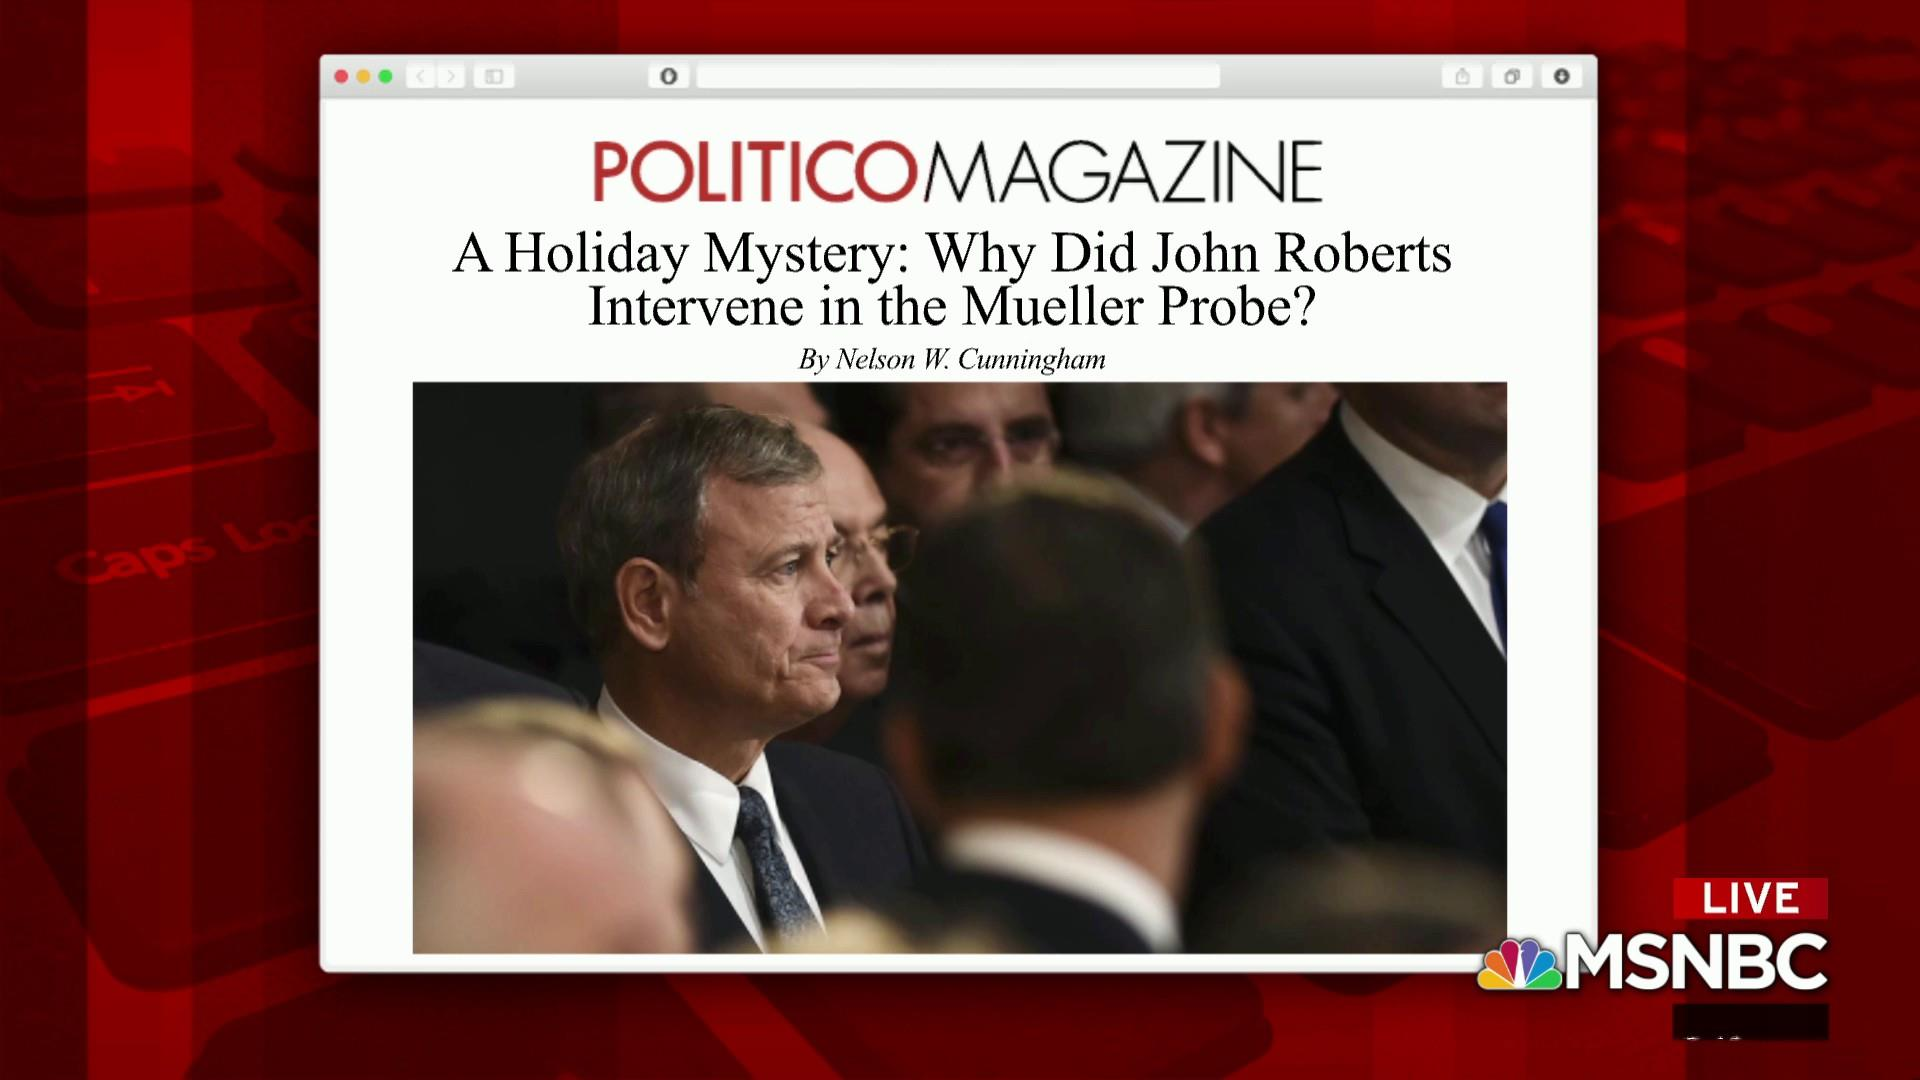 John Roberts intervenes in secret subpoena case